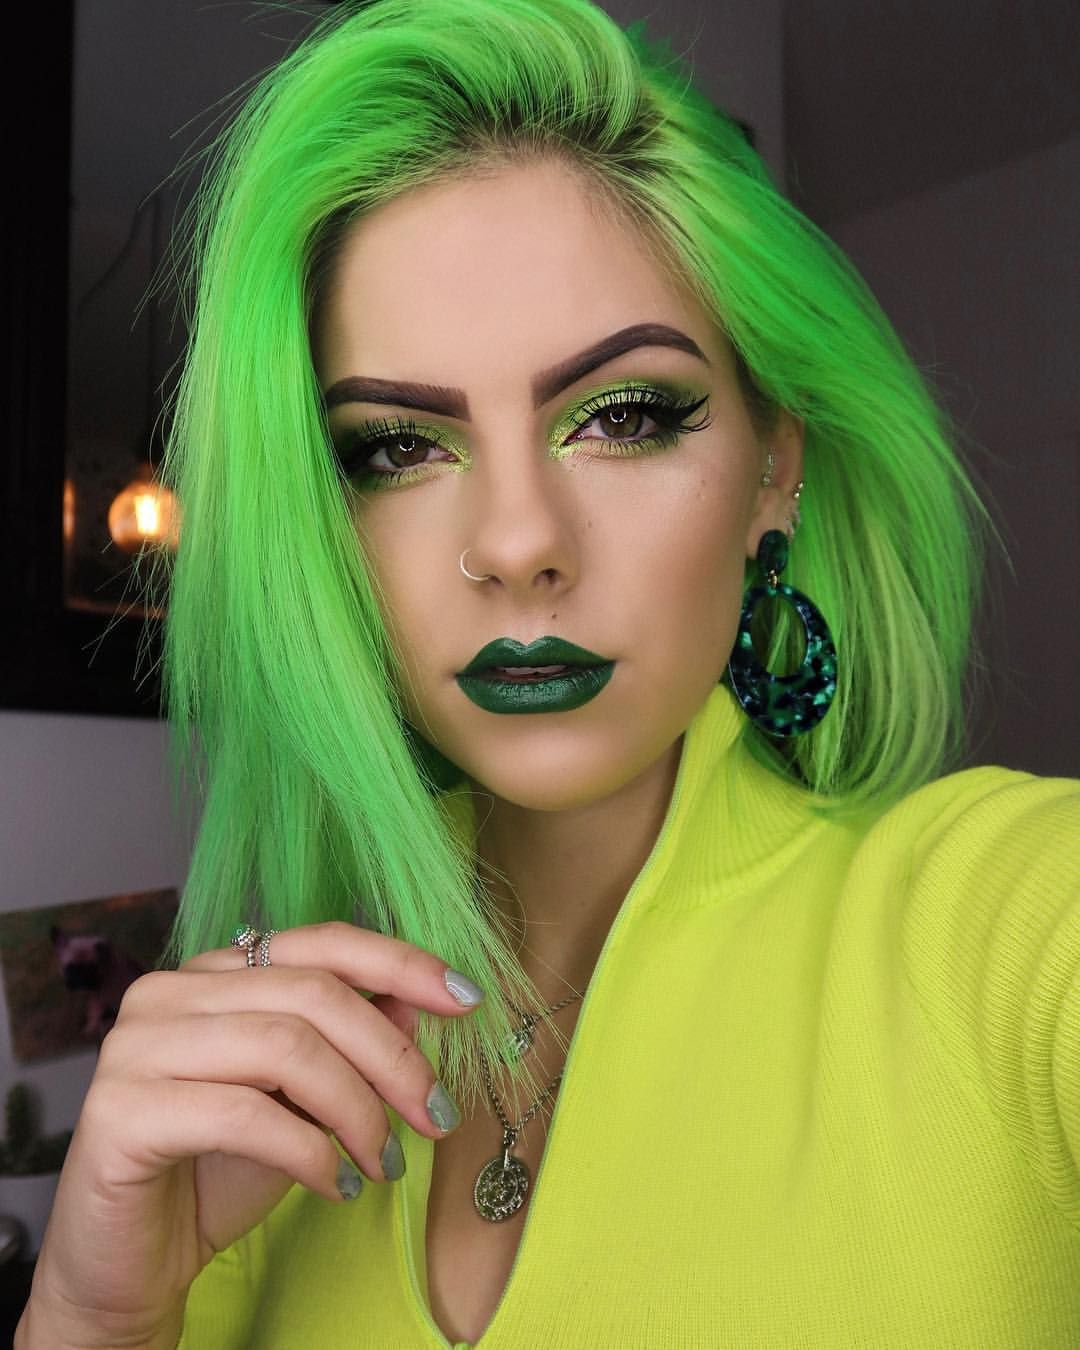 How to Find Beautiful Styles With Neon Green Hair Color